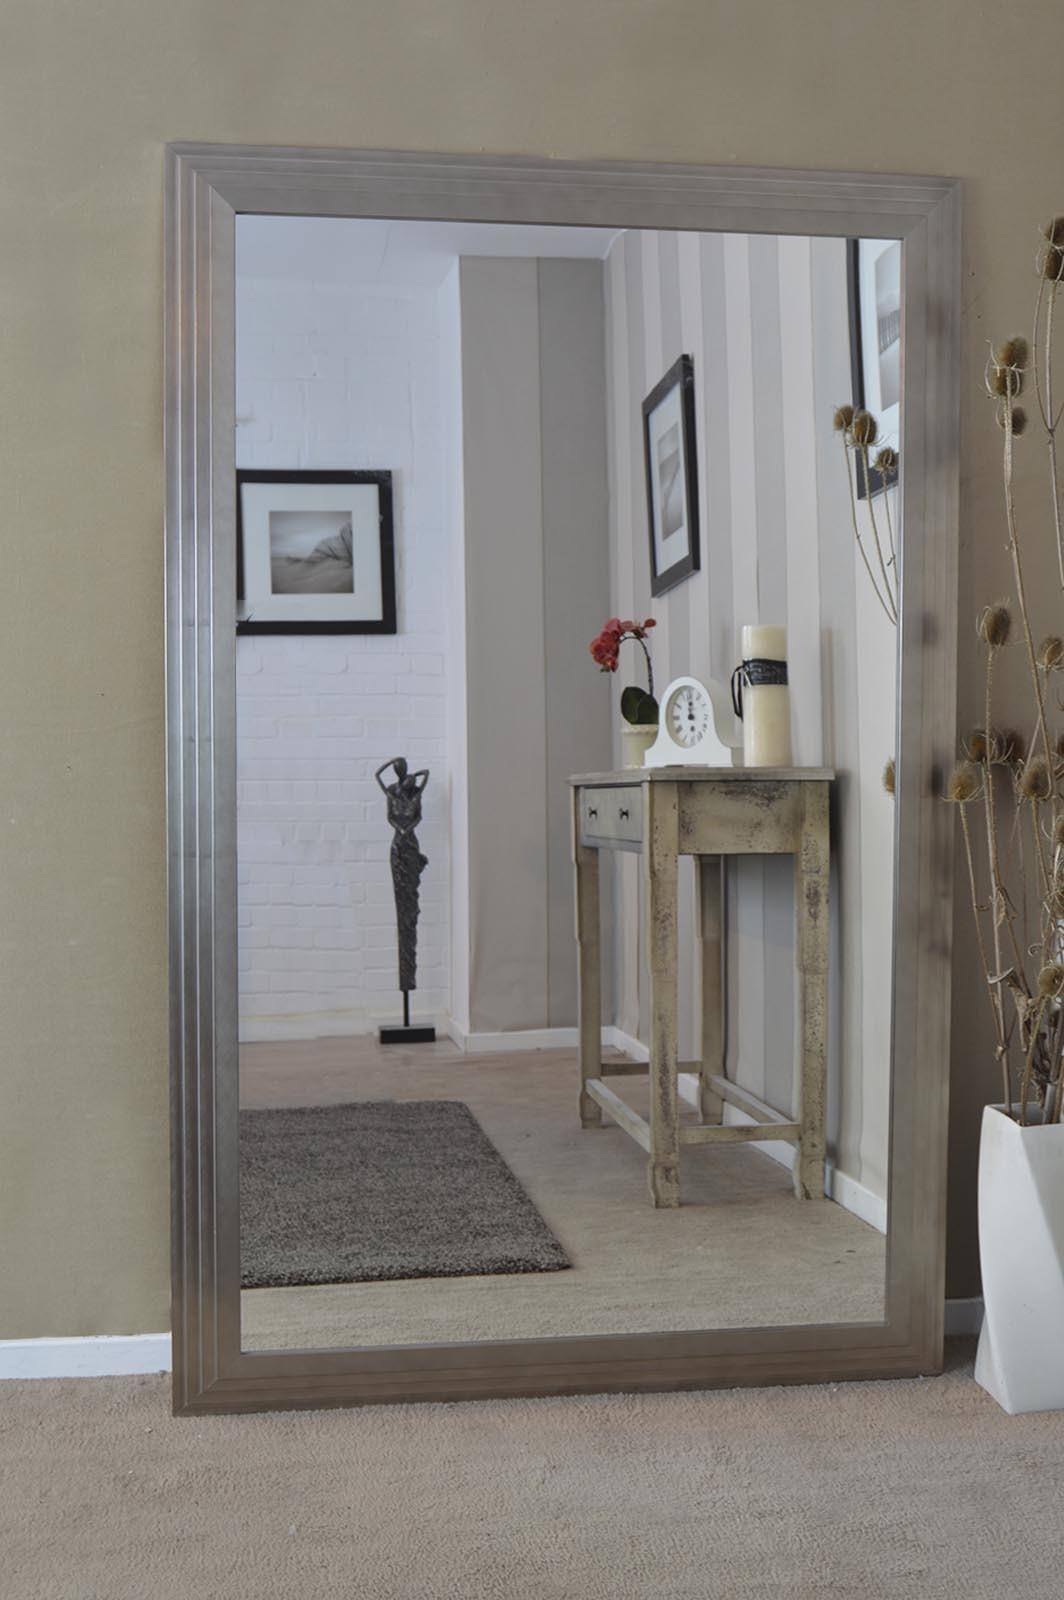 Bedroom: Appealing Oversized Mirrors For Home Decoration Ideas Regarding Extra Large Full Length Mirror (View 11 of 20)